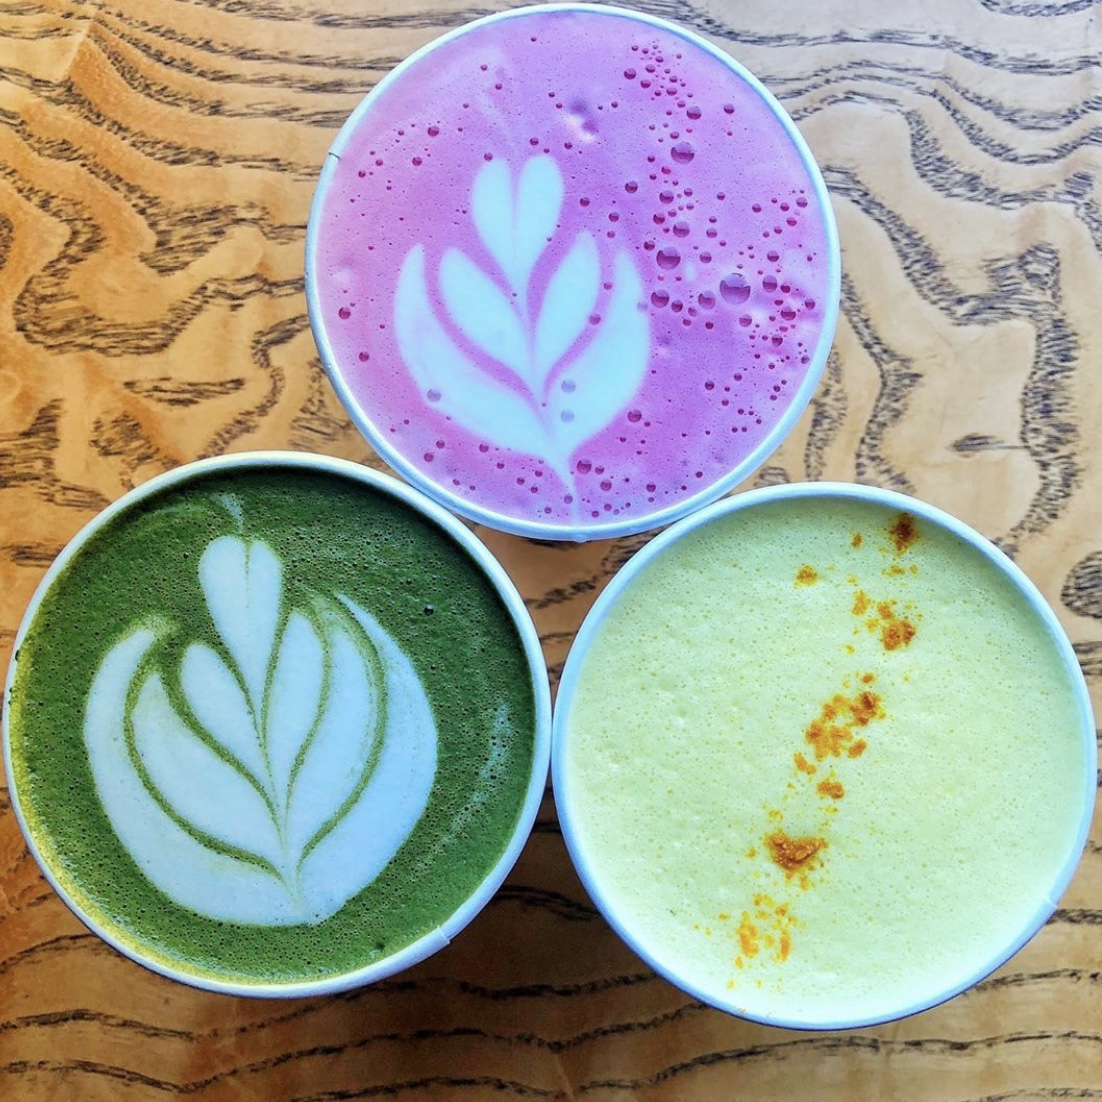 A colorful variety of wellness lattes made with High Lawn Farm milk by Holli Badger at Fuel Bistro, in Great Barrington MA